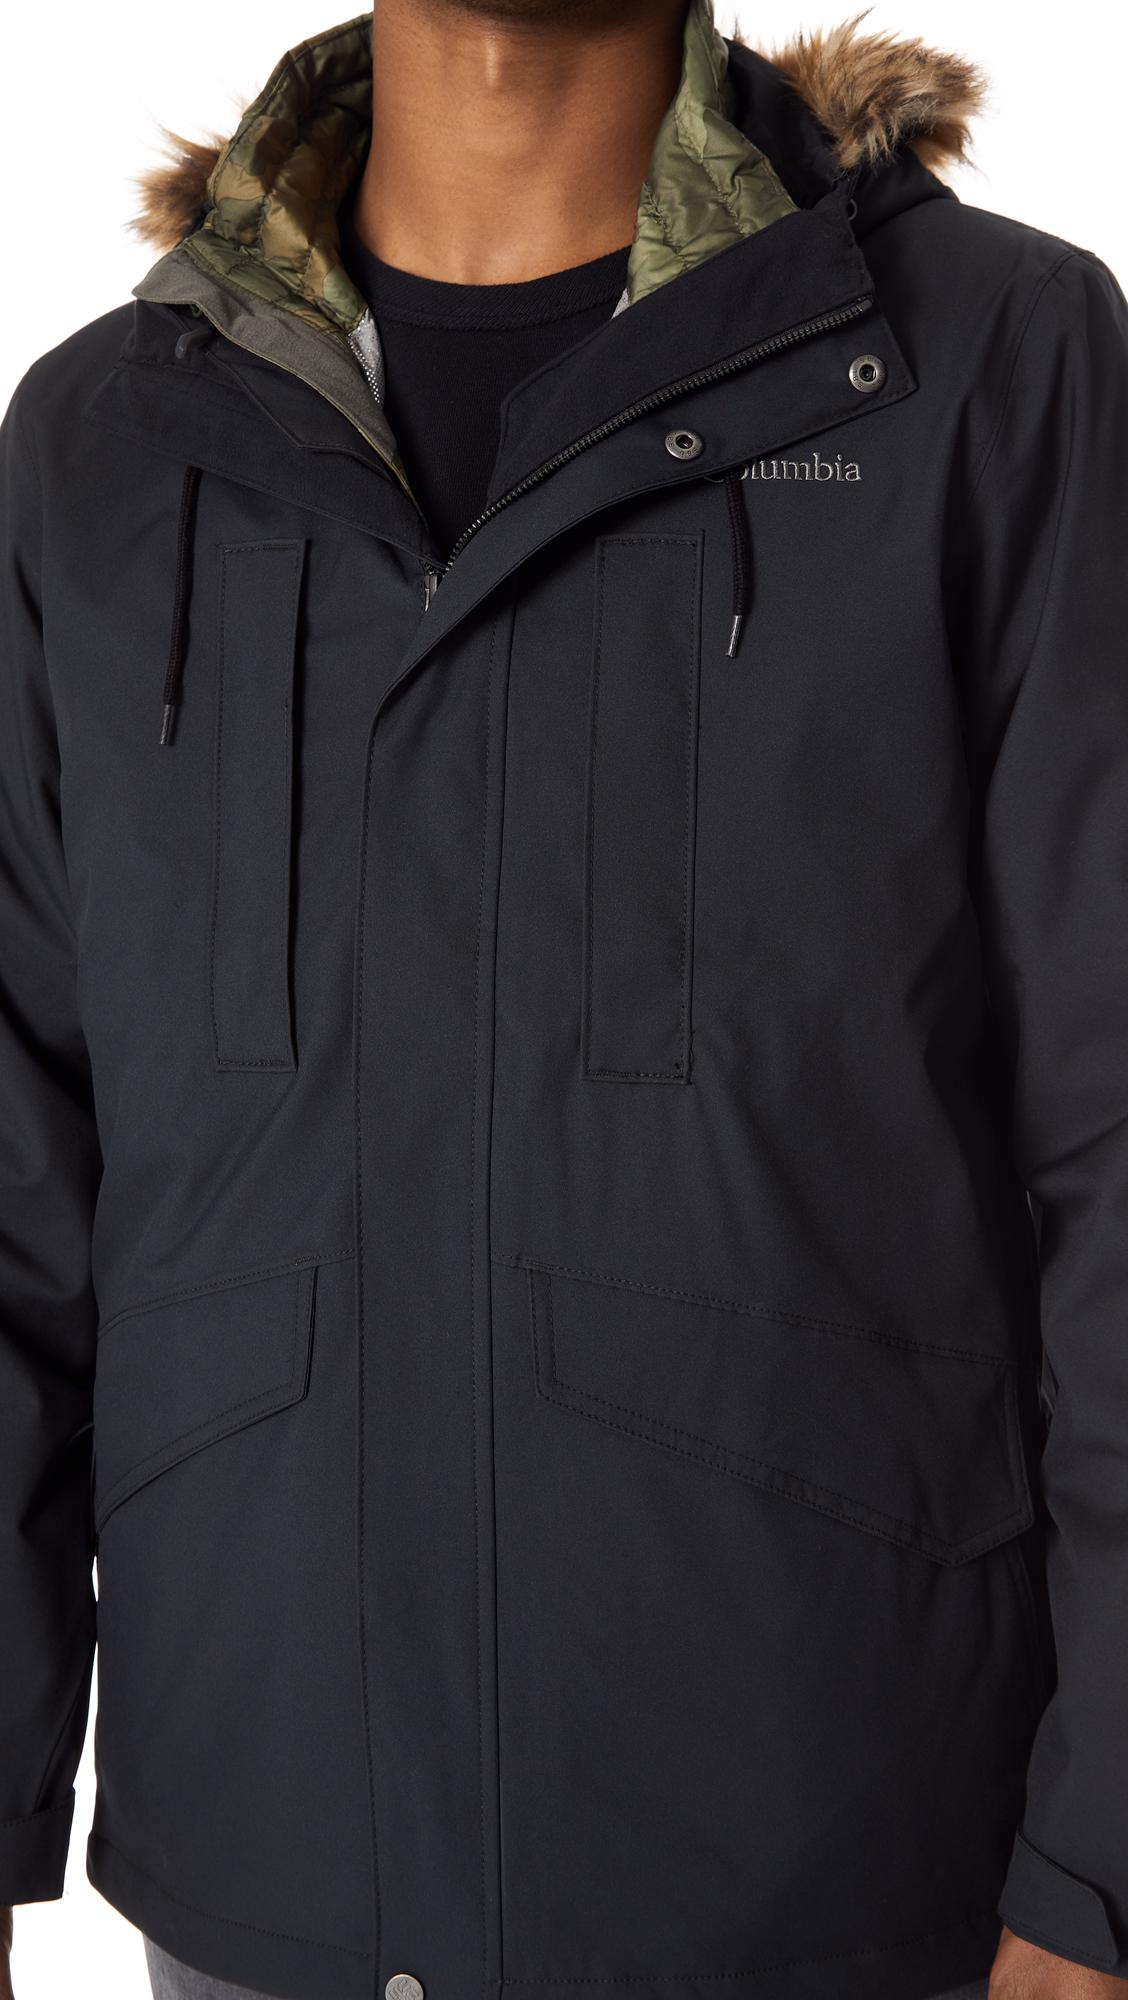 Lyst - Columbia Bean Bluff Interchange Jacket in Black for Men a3836d8bf